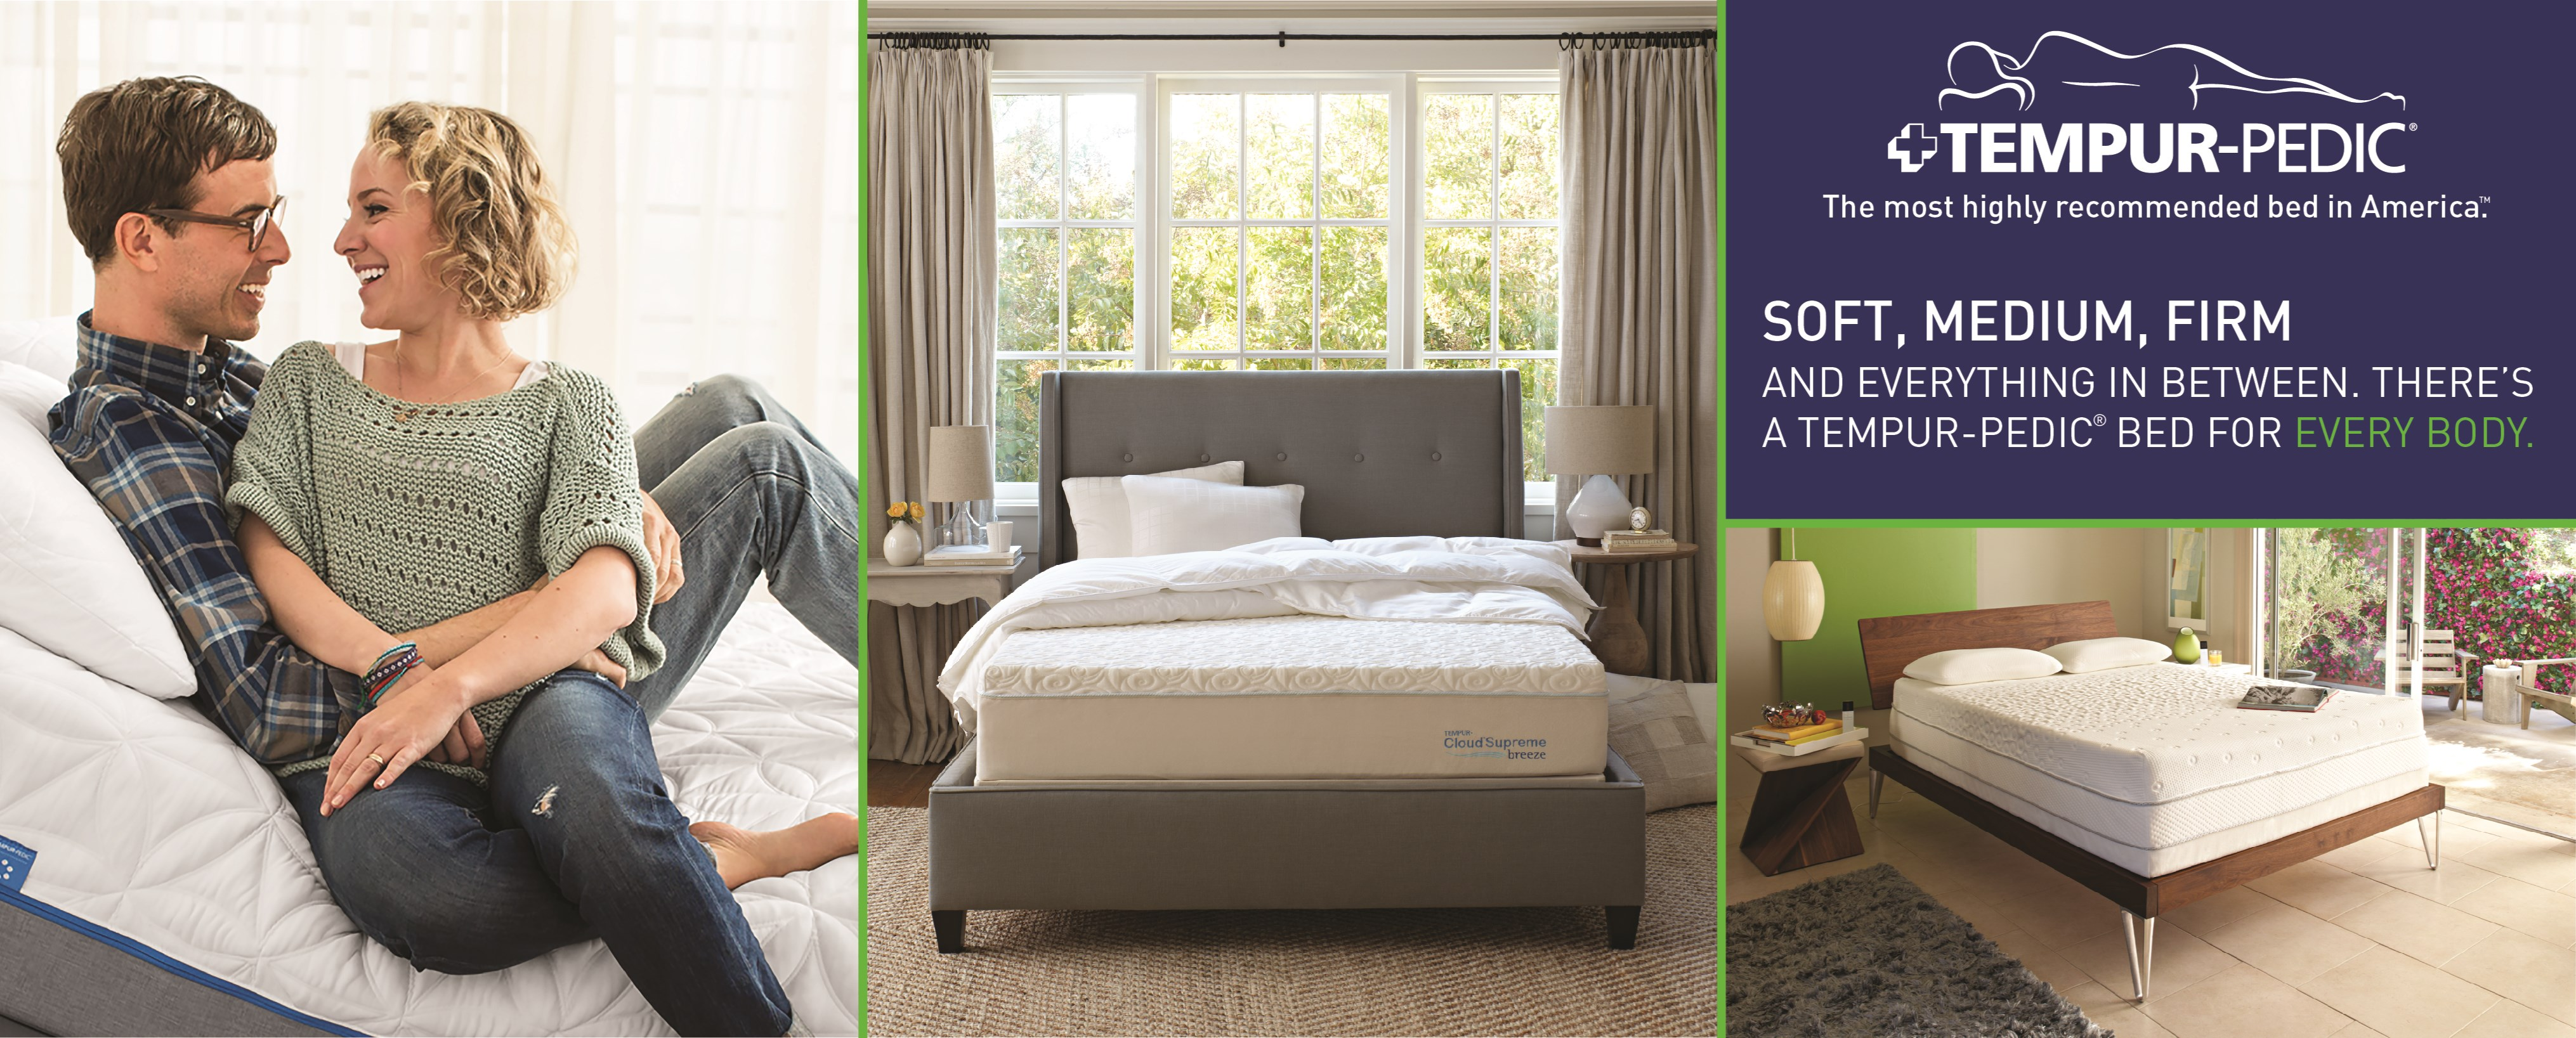 Furniture & ApplianceMart Tempurpedic Mattresses